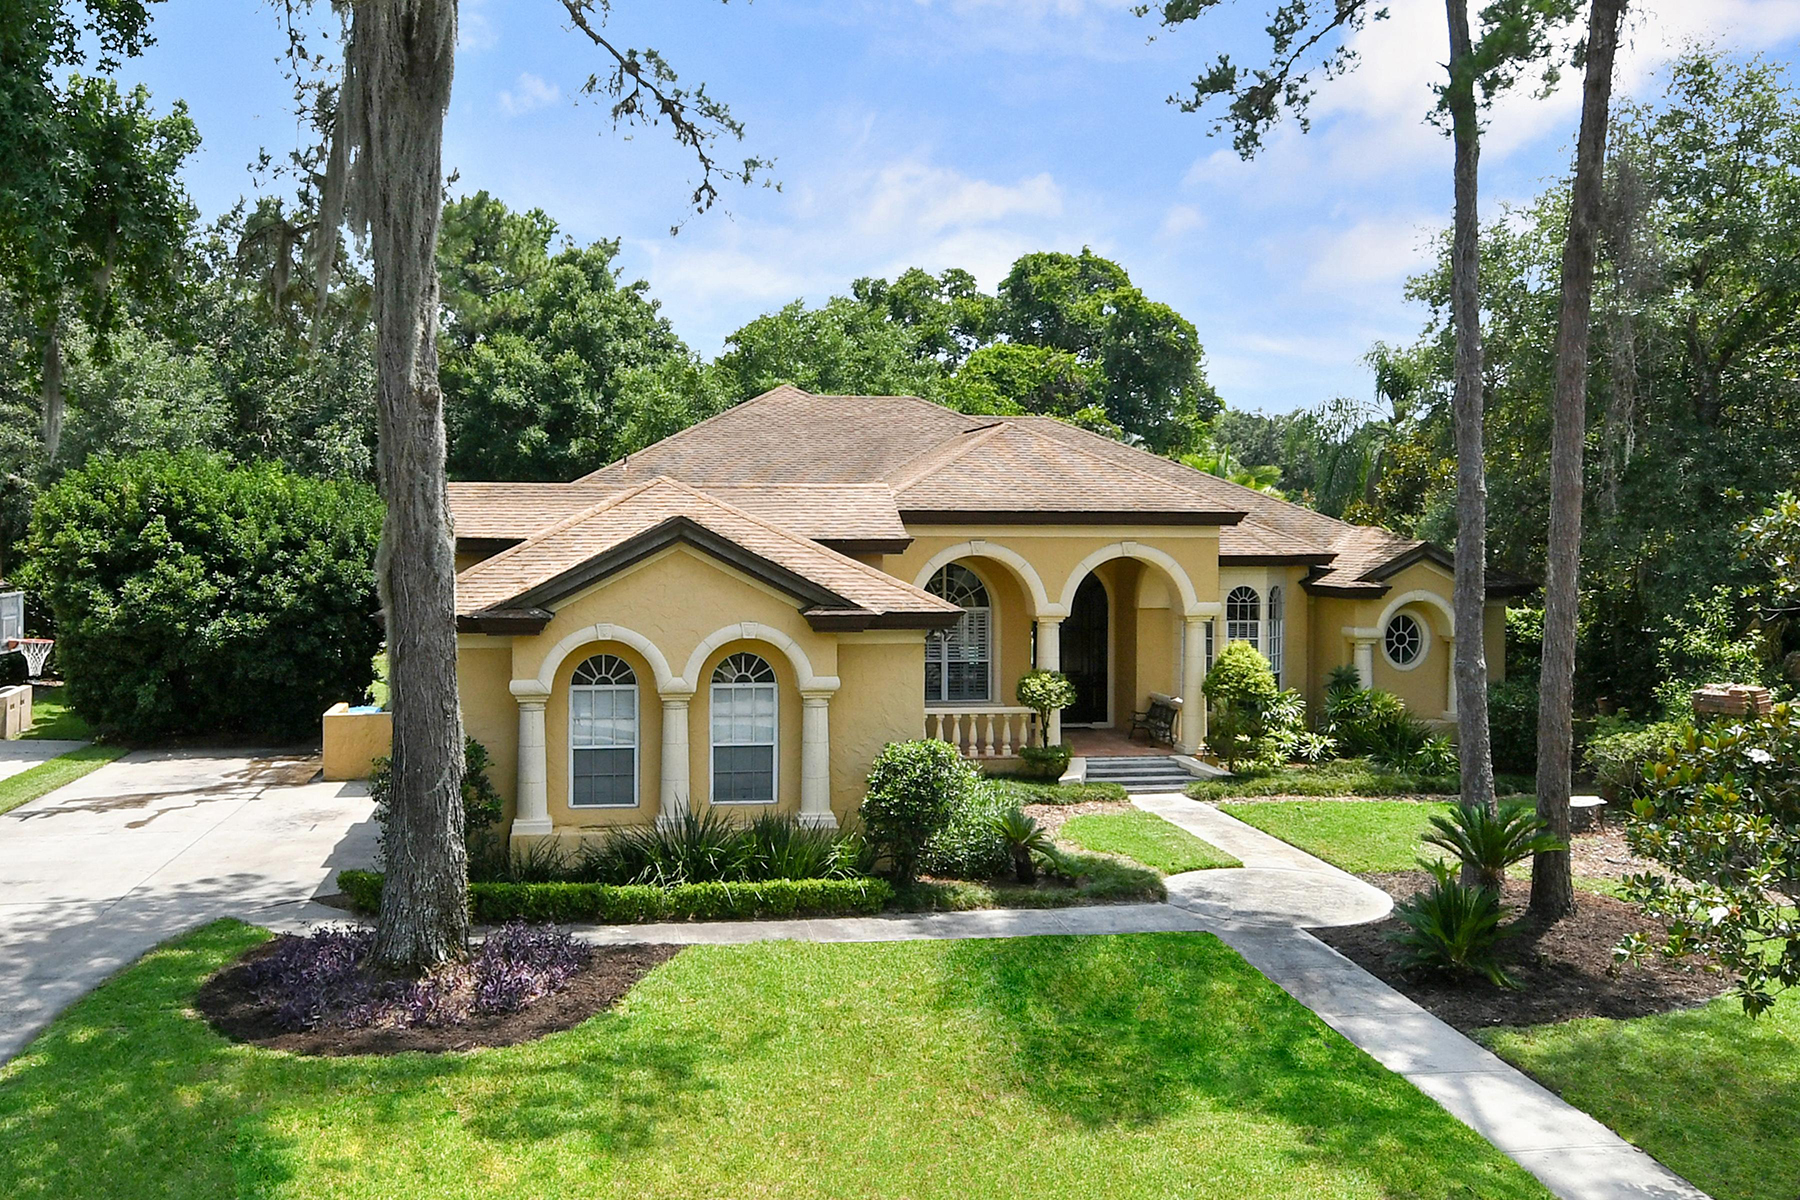 Single Family Home for Sale at ORLANDO - WINTER SPRINGS 101 Cherry Creek Cir Winter Springs, Florida, 32708 United States